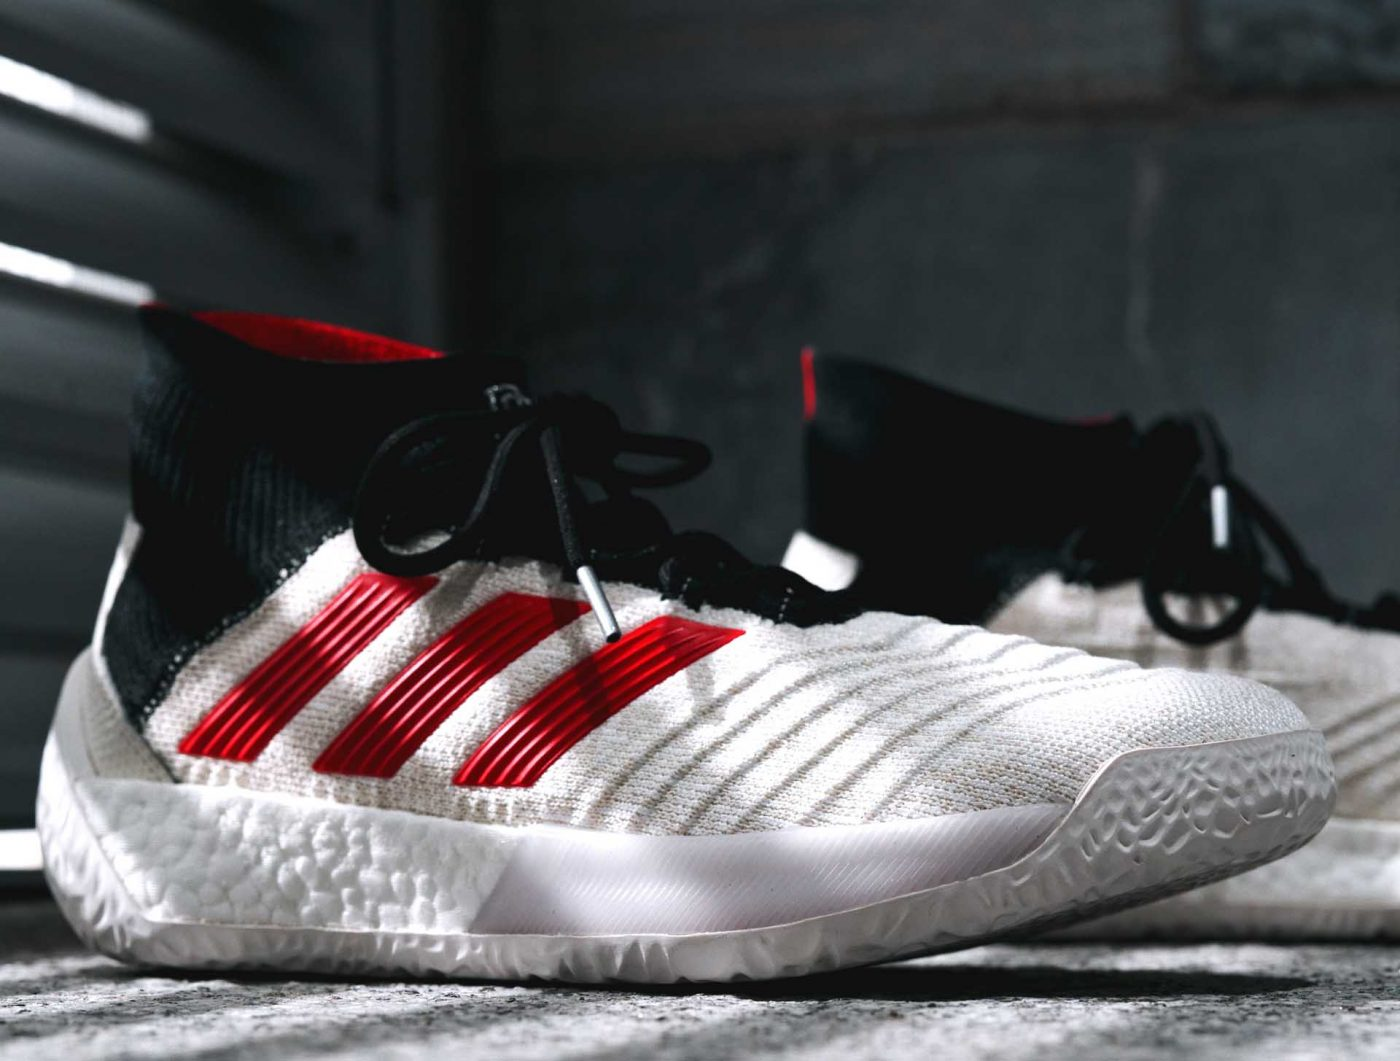 chaussures-football-adidas-predator-19-paul-pogba-streetwear-collection-5-footpack-avril-2019-2